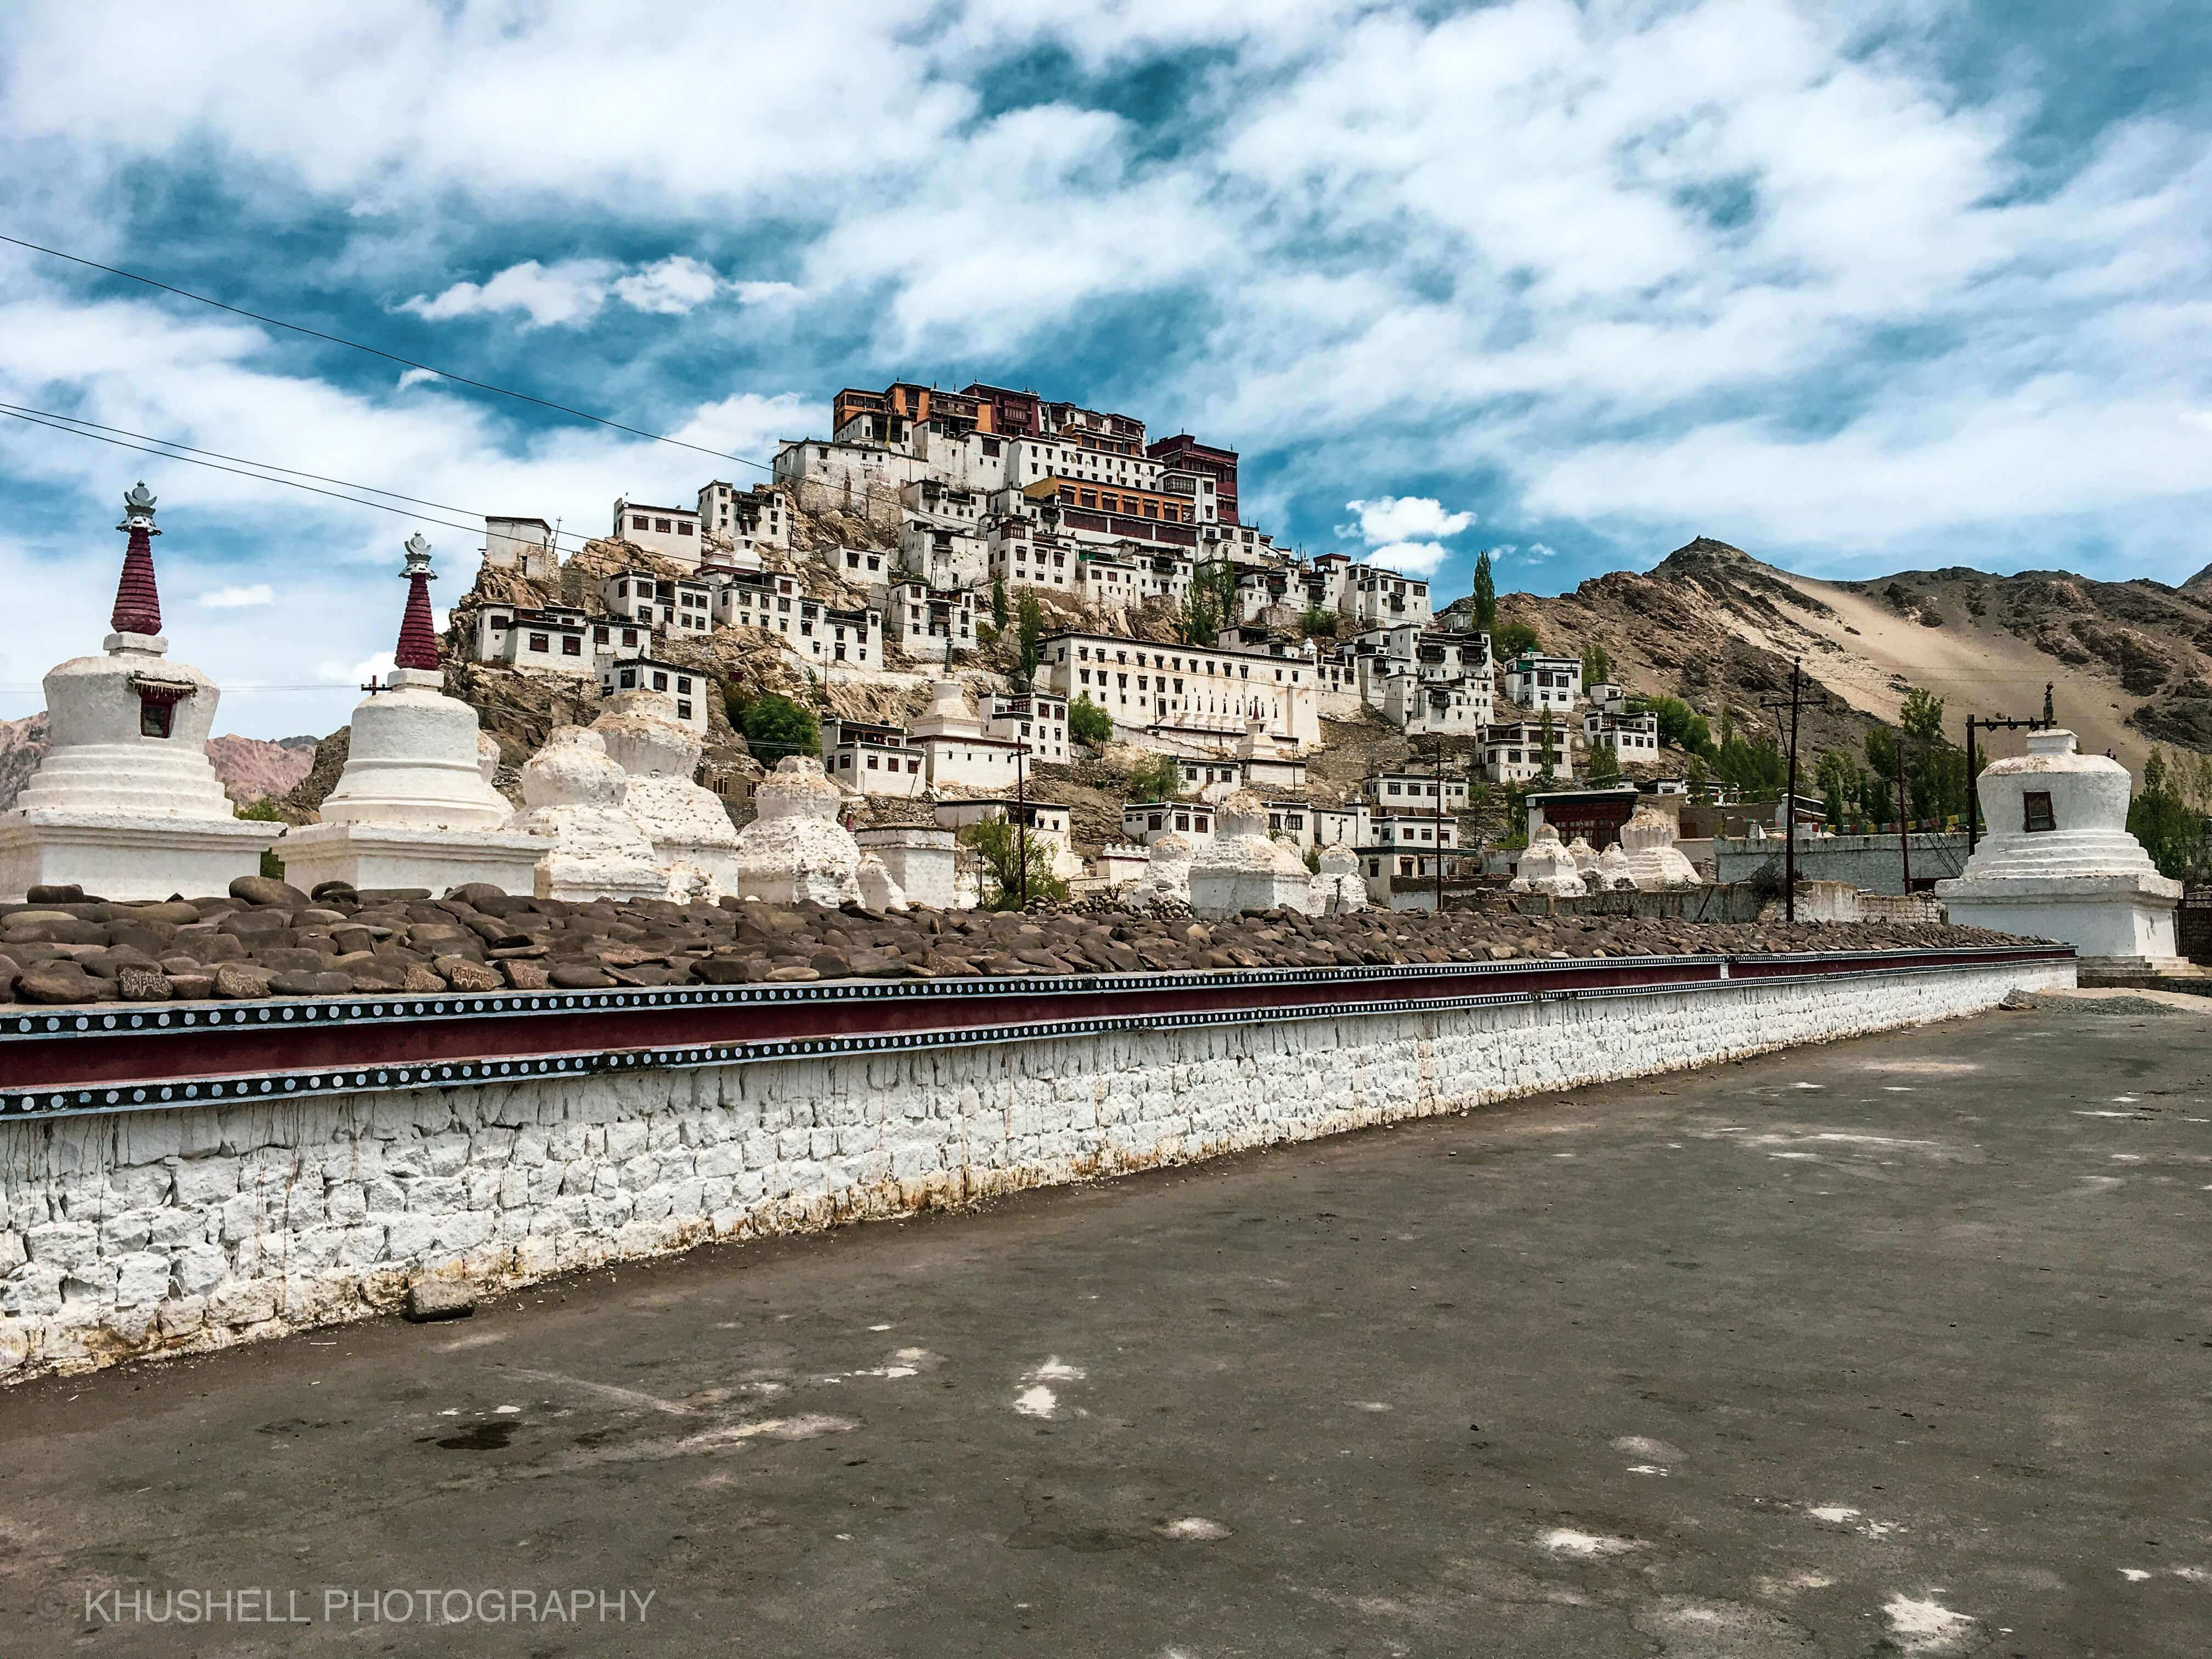 Trip to Leh for Breakseekers and Wanderers 10 Nights and 11 Days